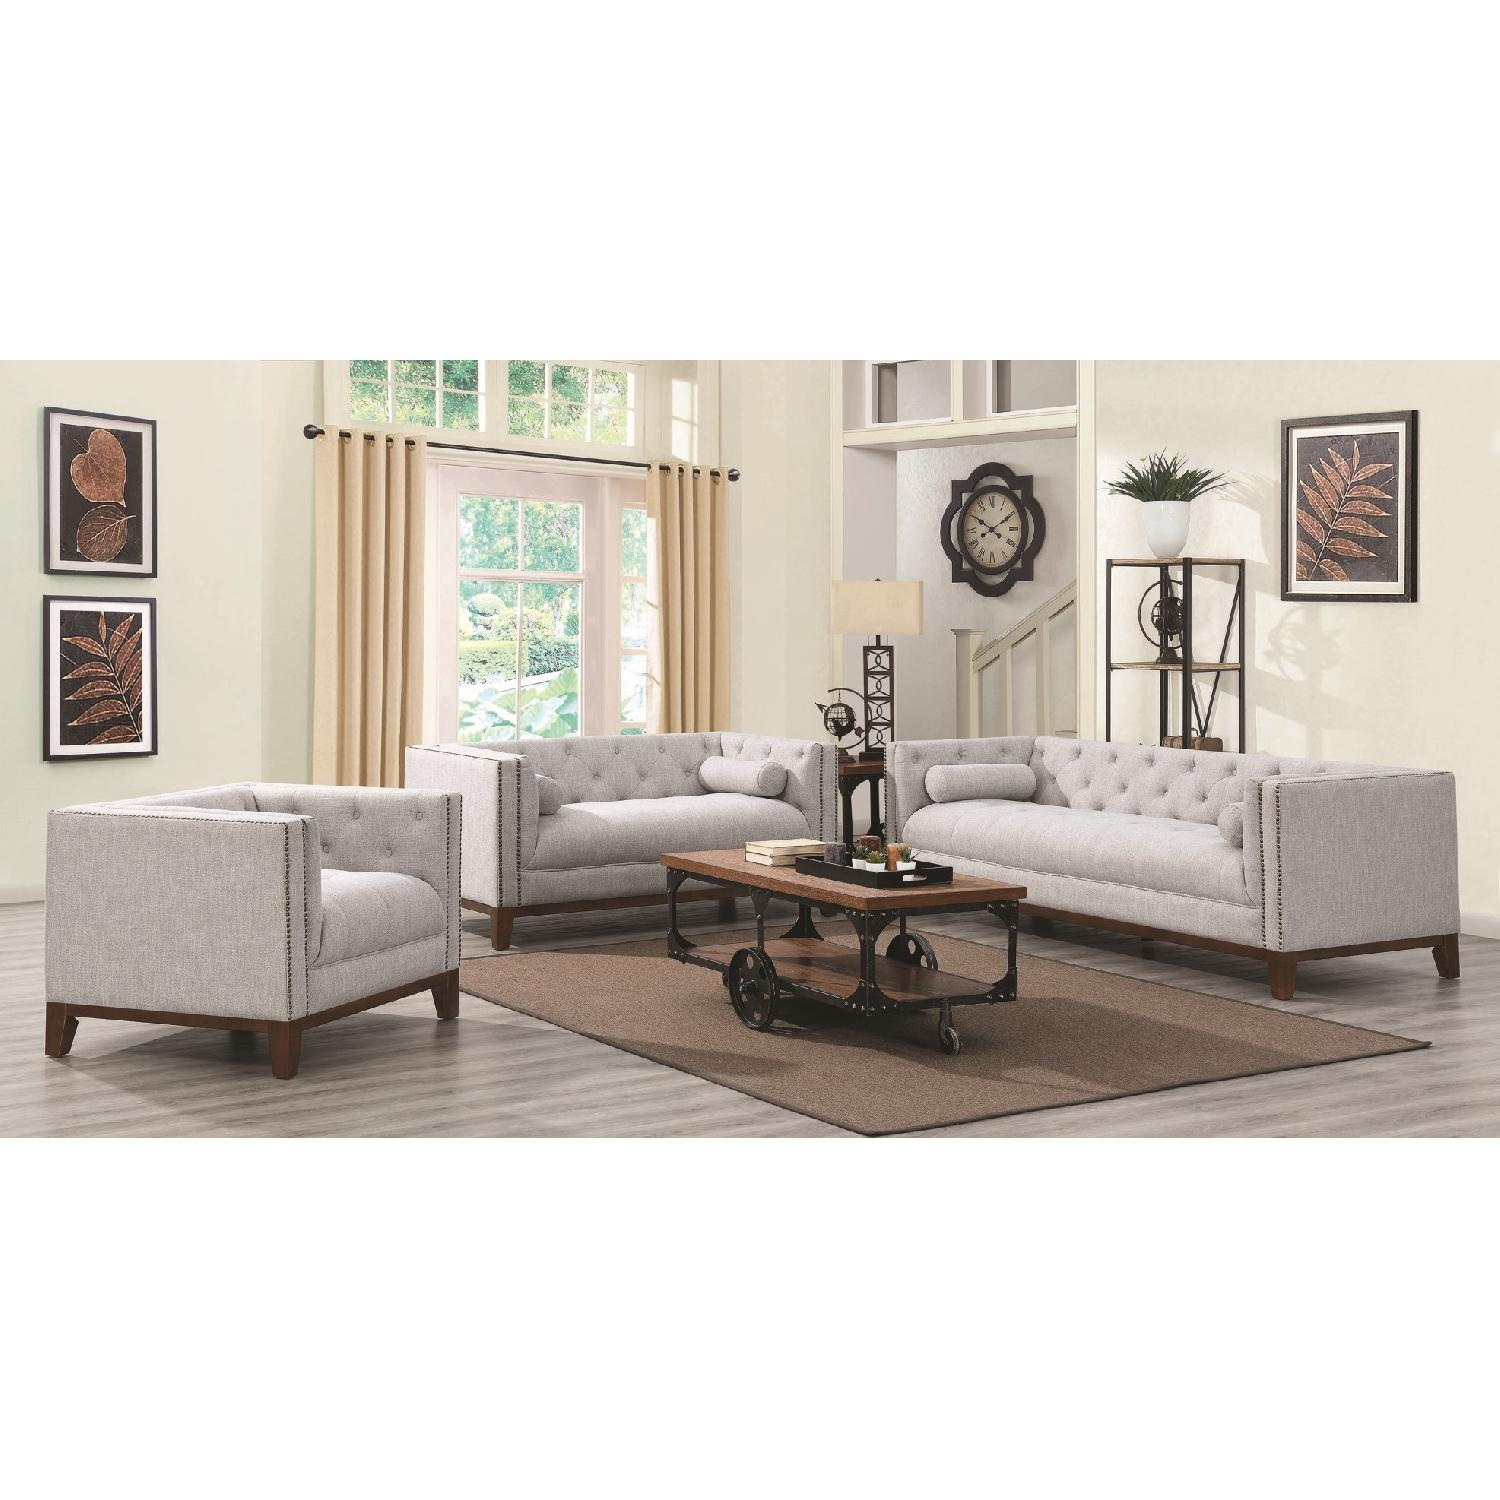 Modern Style Sofa w/ Tufted Buttons & Nailhead Accent - image-8